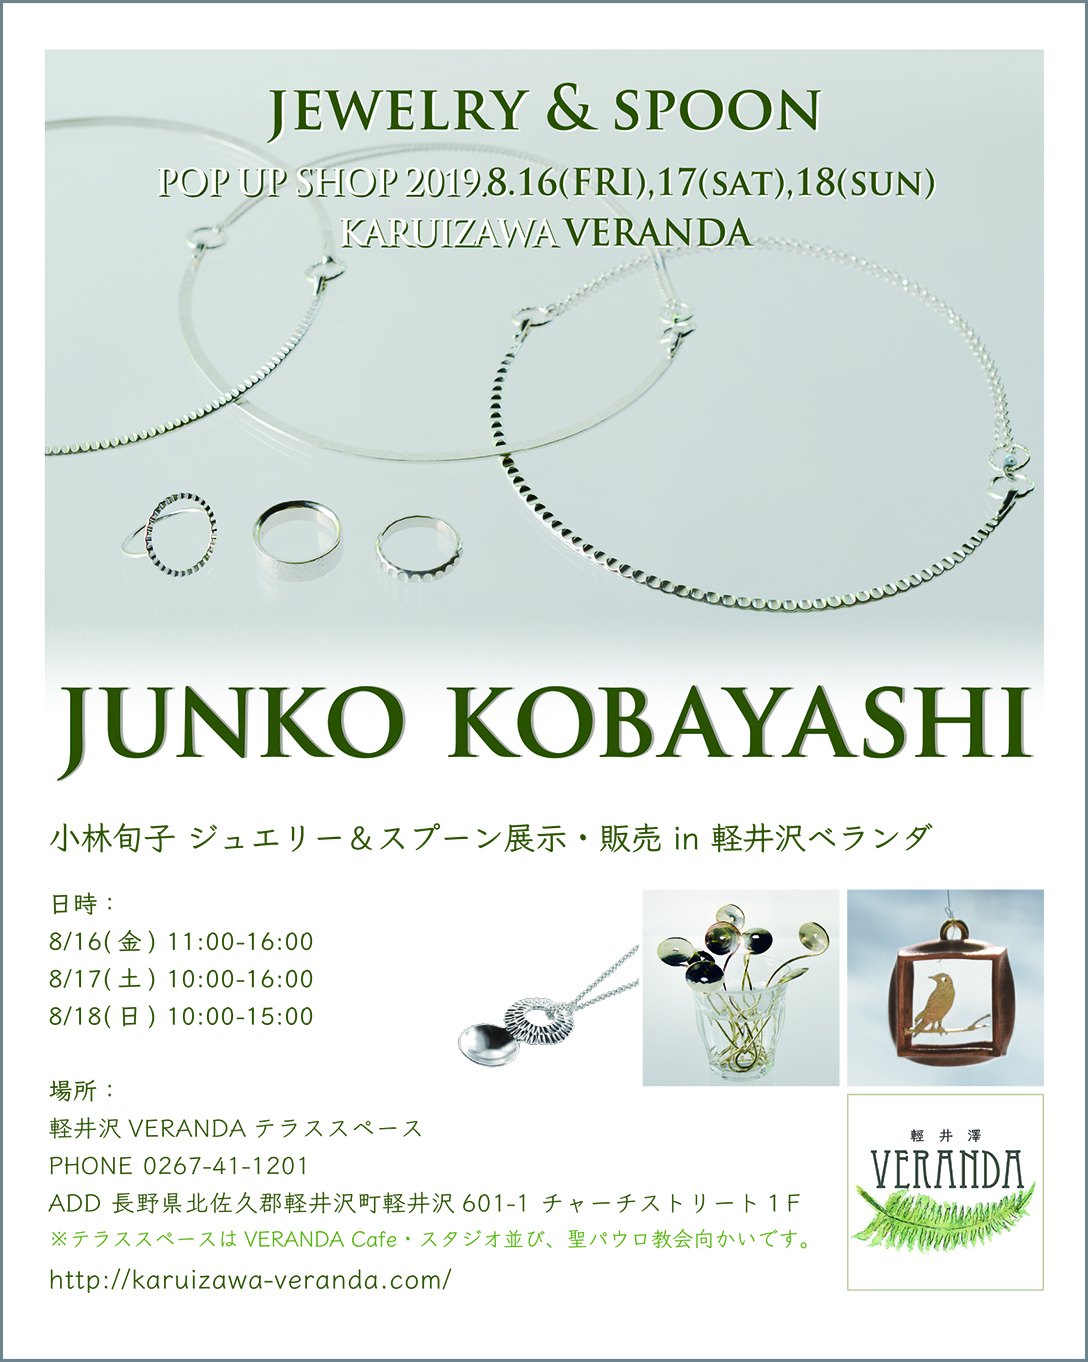 pop up shop 2019 in karuizawa veranda